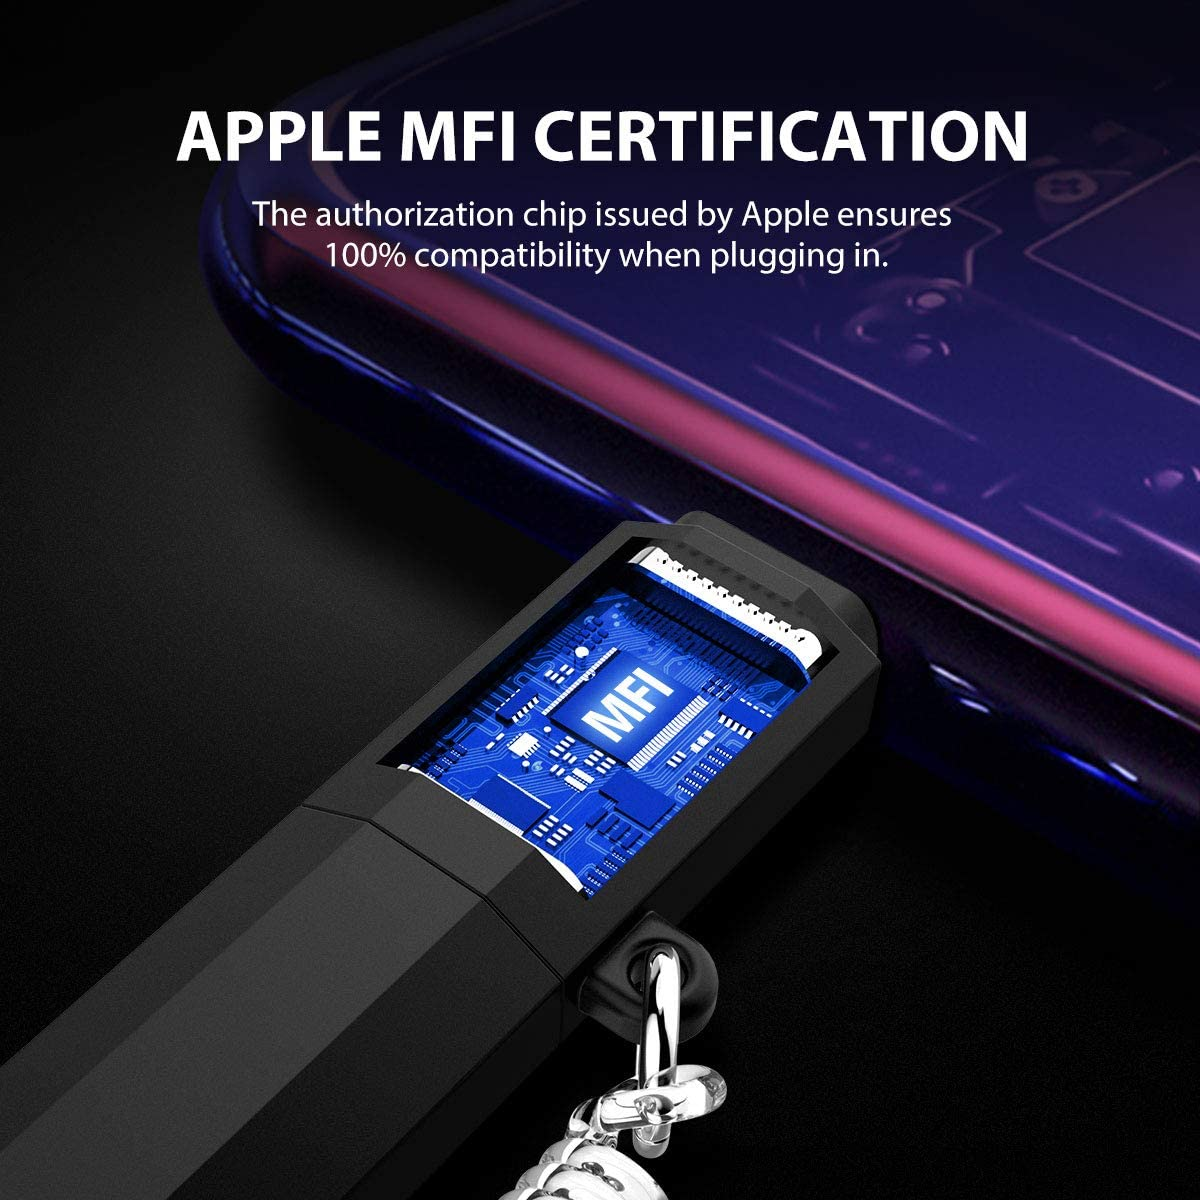 Apple MFi Certified Led iPhone Charger Cable, 2-in-1 Led Lightning Cable with 360 & Flowing Light ,3.3 ft (Purple)